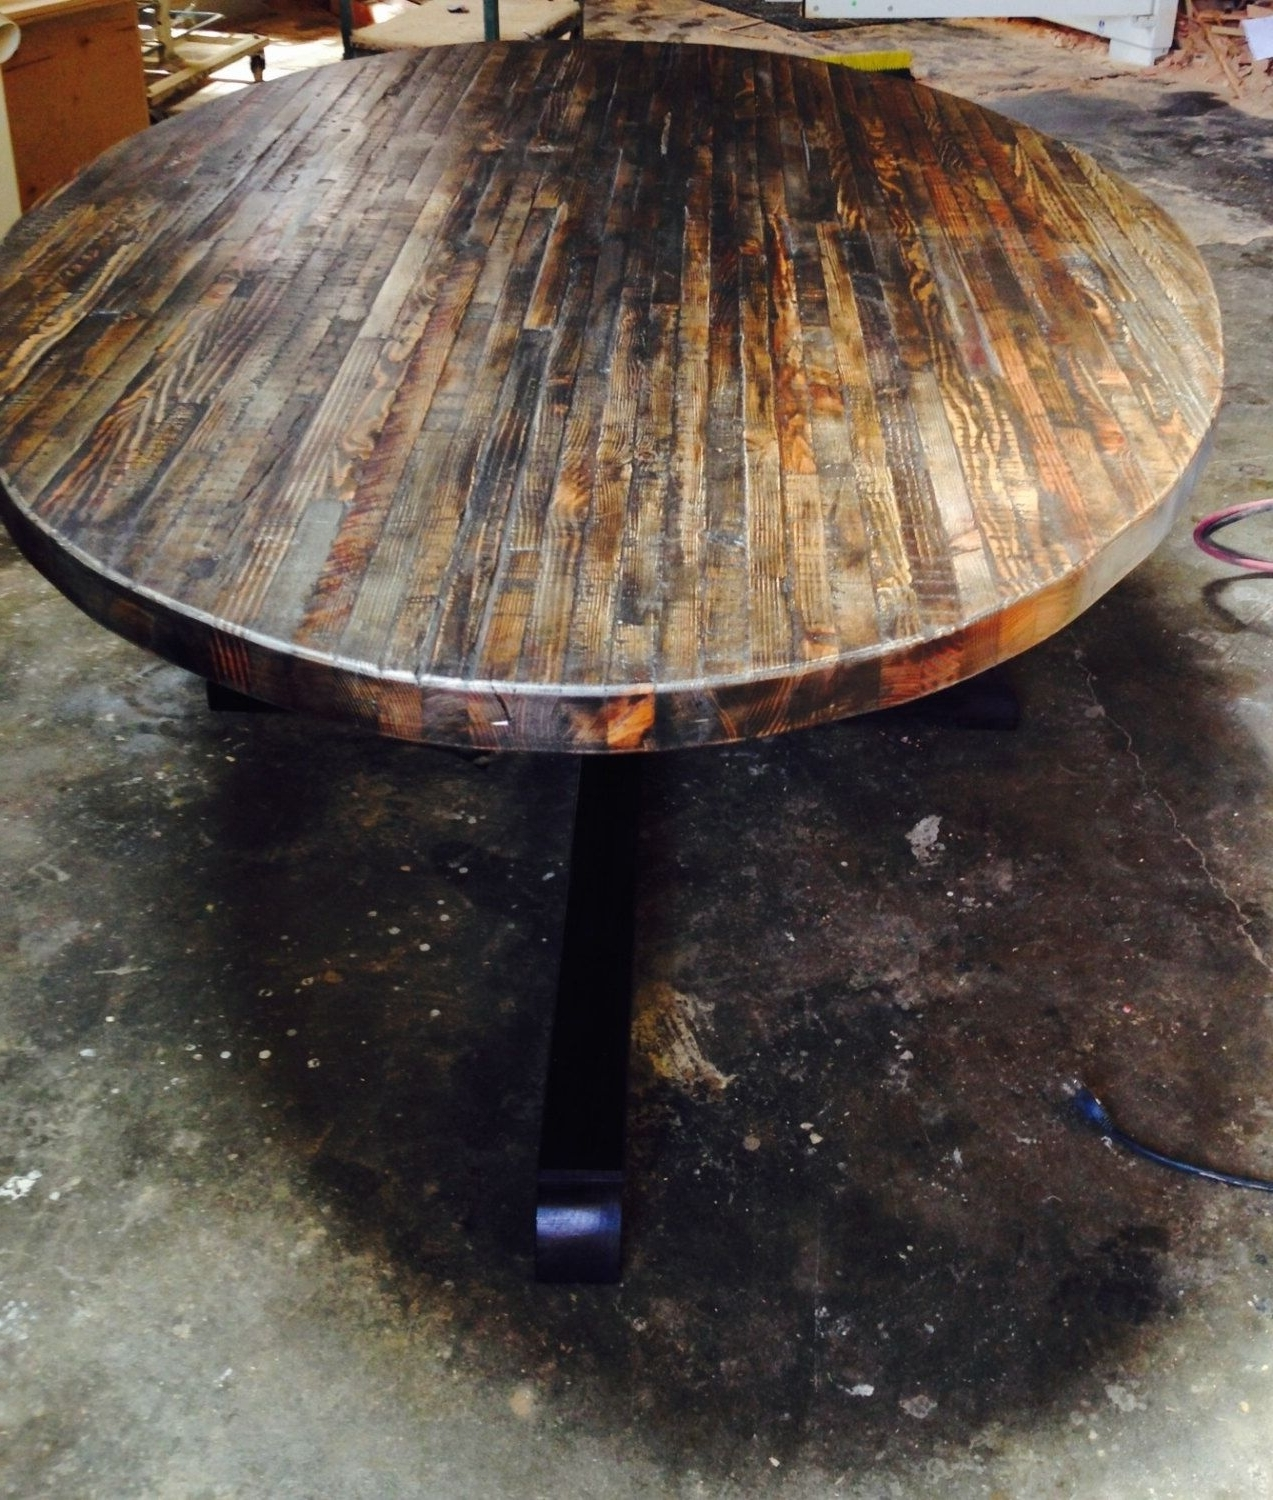 Most Recently Released Extra Large Custom Butcher Block Strip Oval Wood Dining Table From Intended For Oval Reclaimed Wood Dining Tables (View 10 of 25)